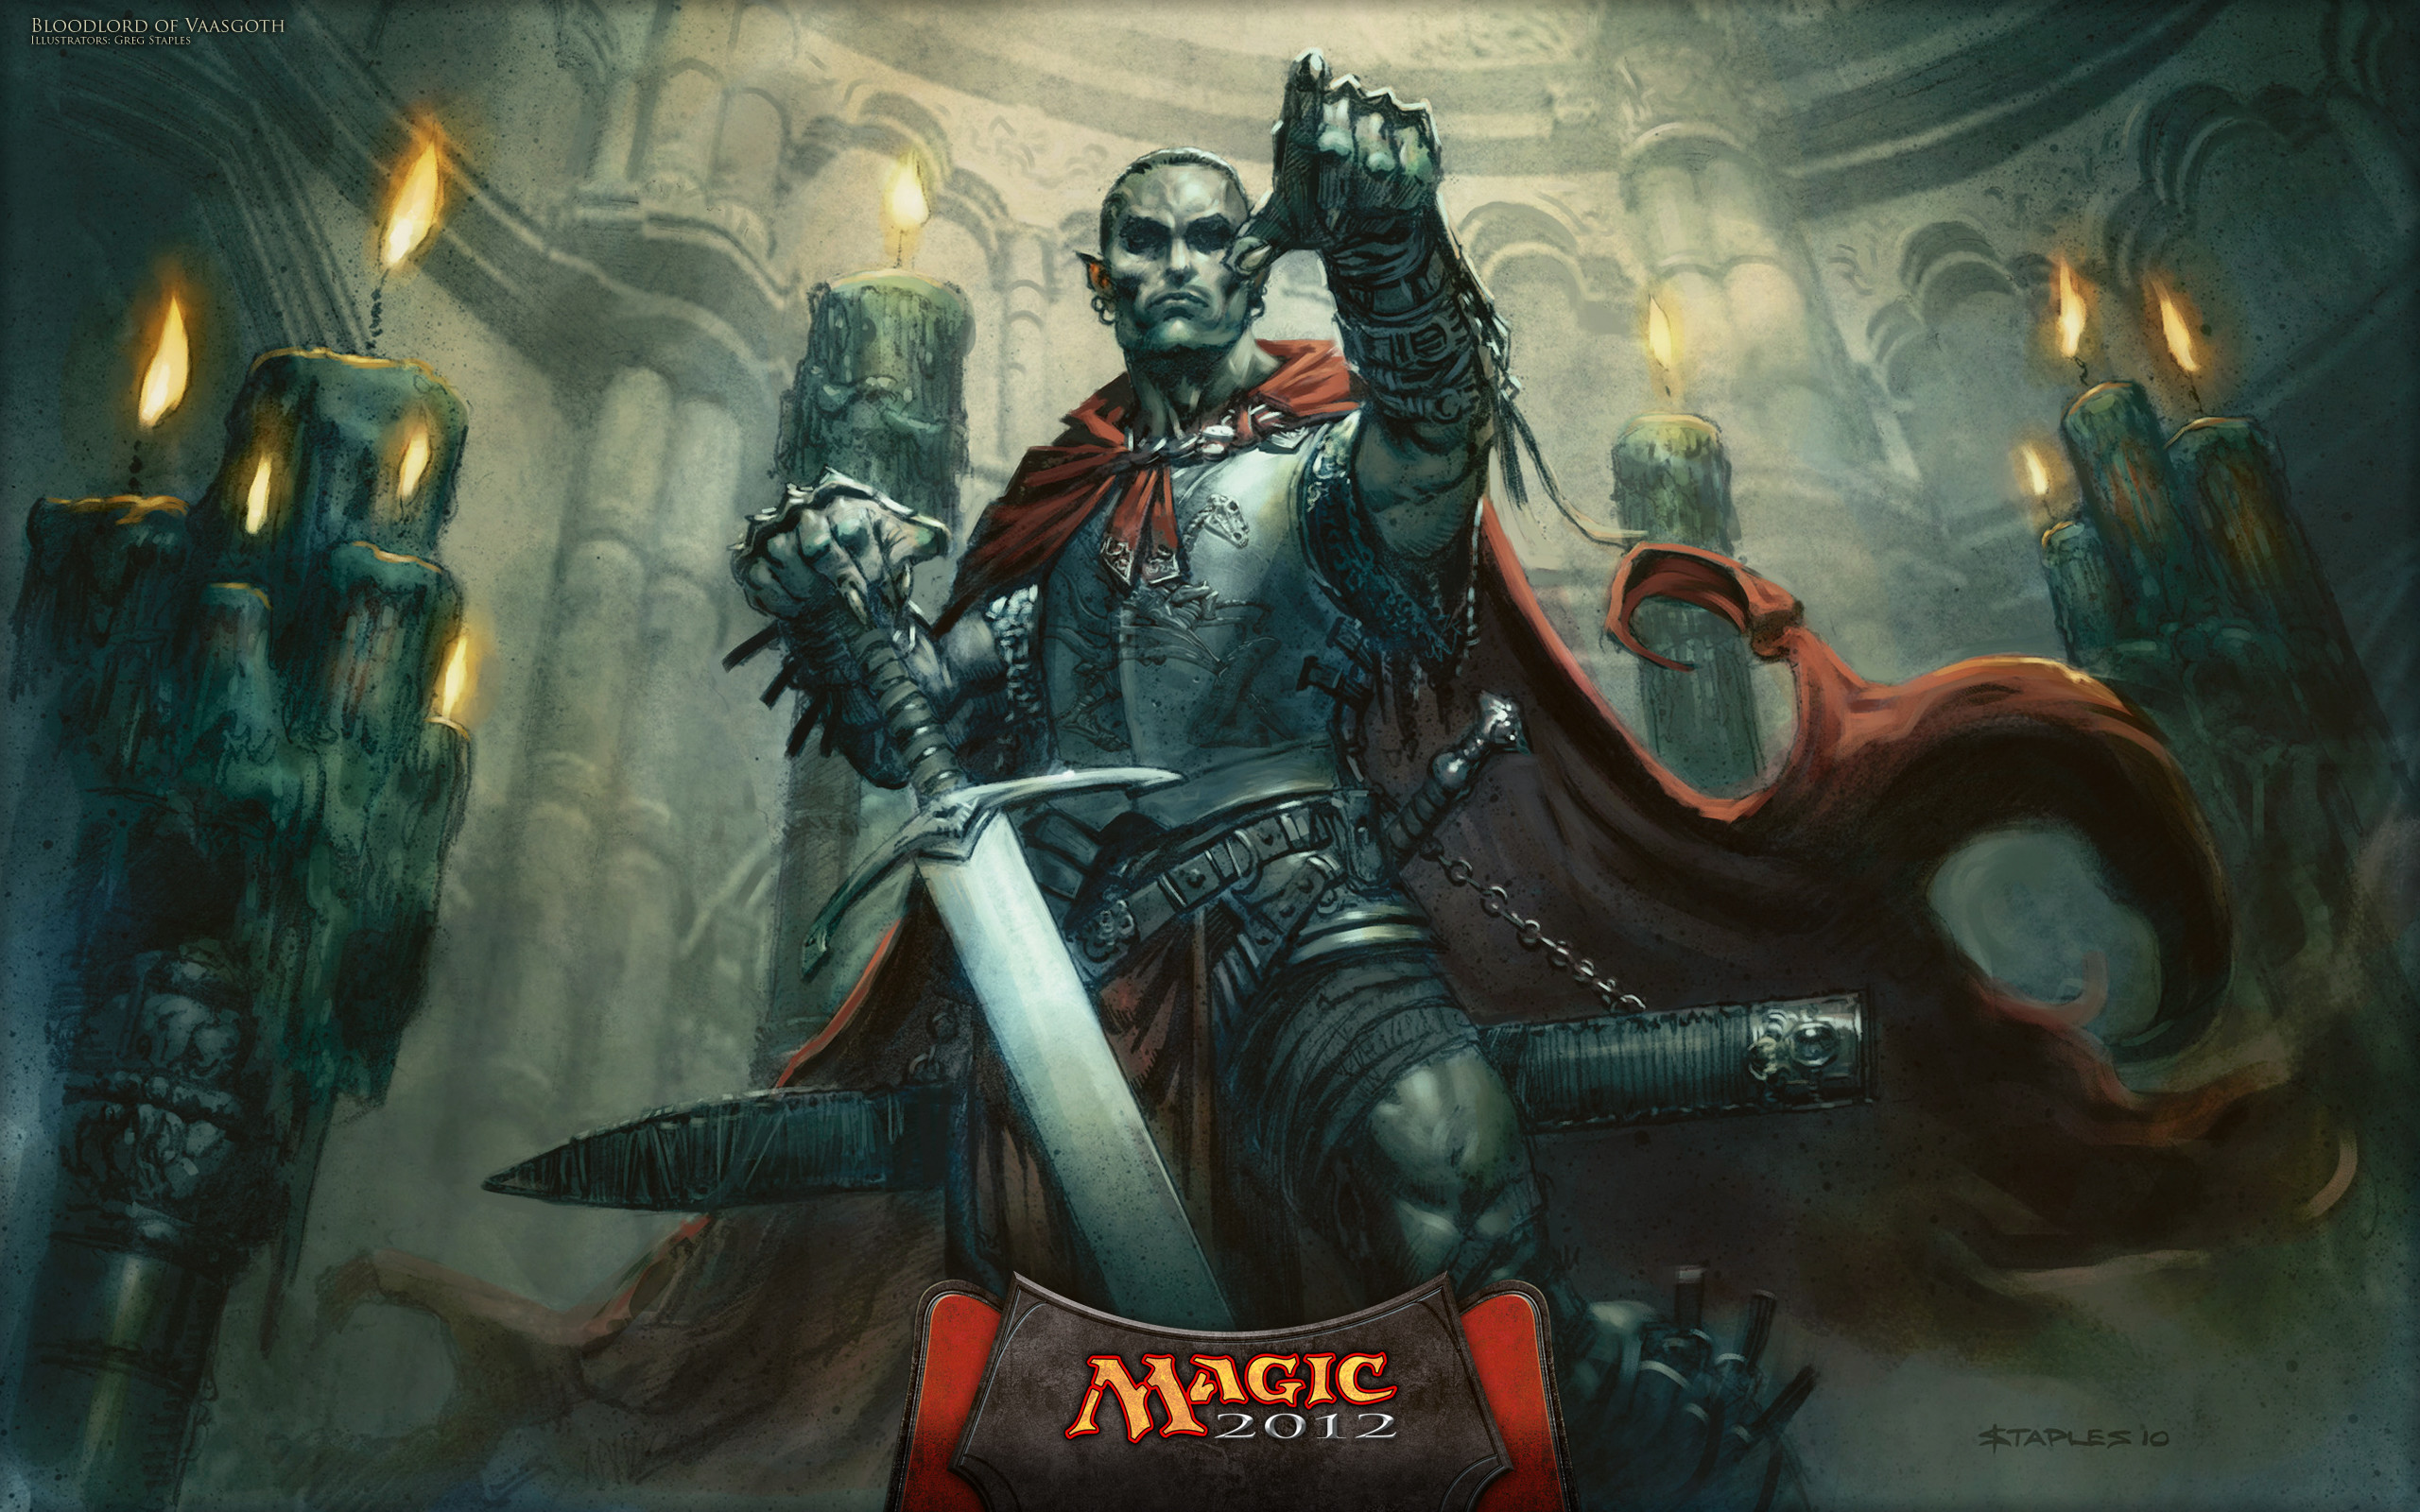 2560x1600 Magic The Gathering Vampire Wallpaper Blood Lord